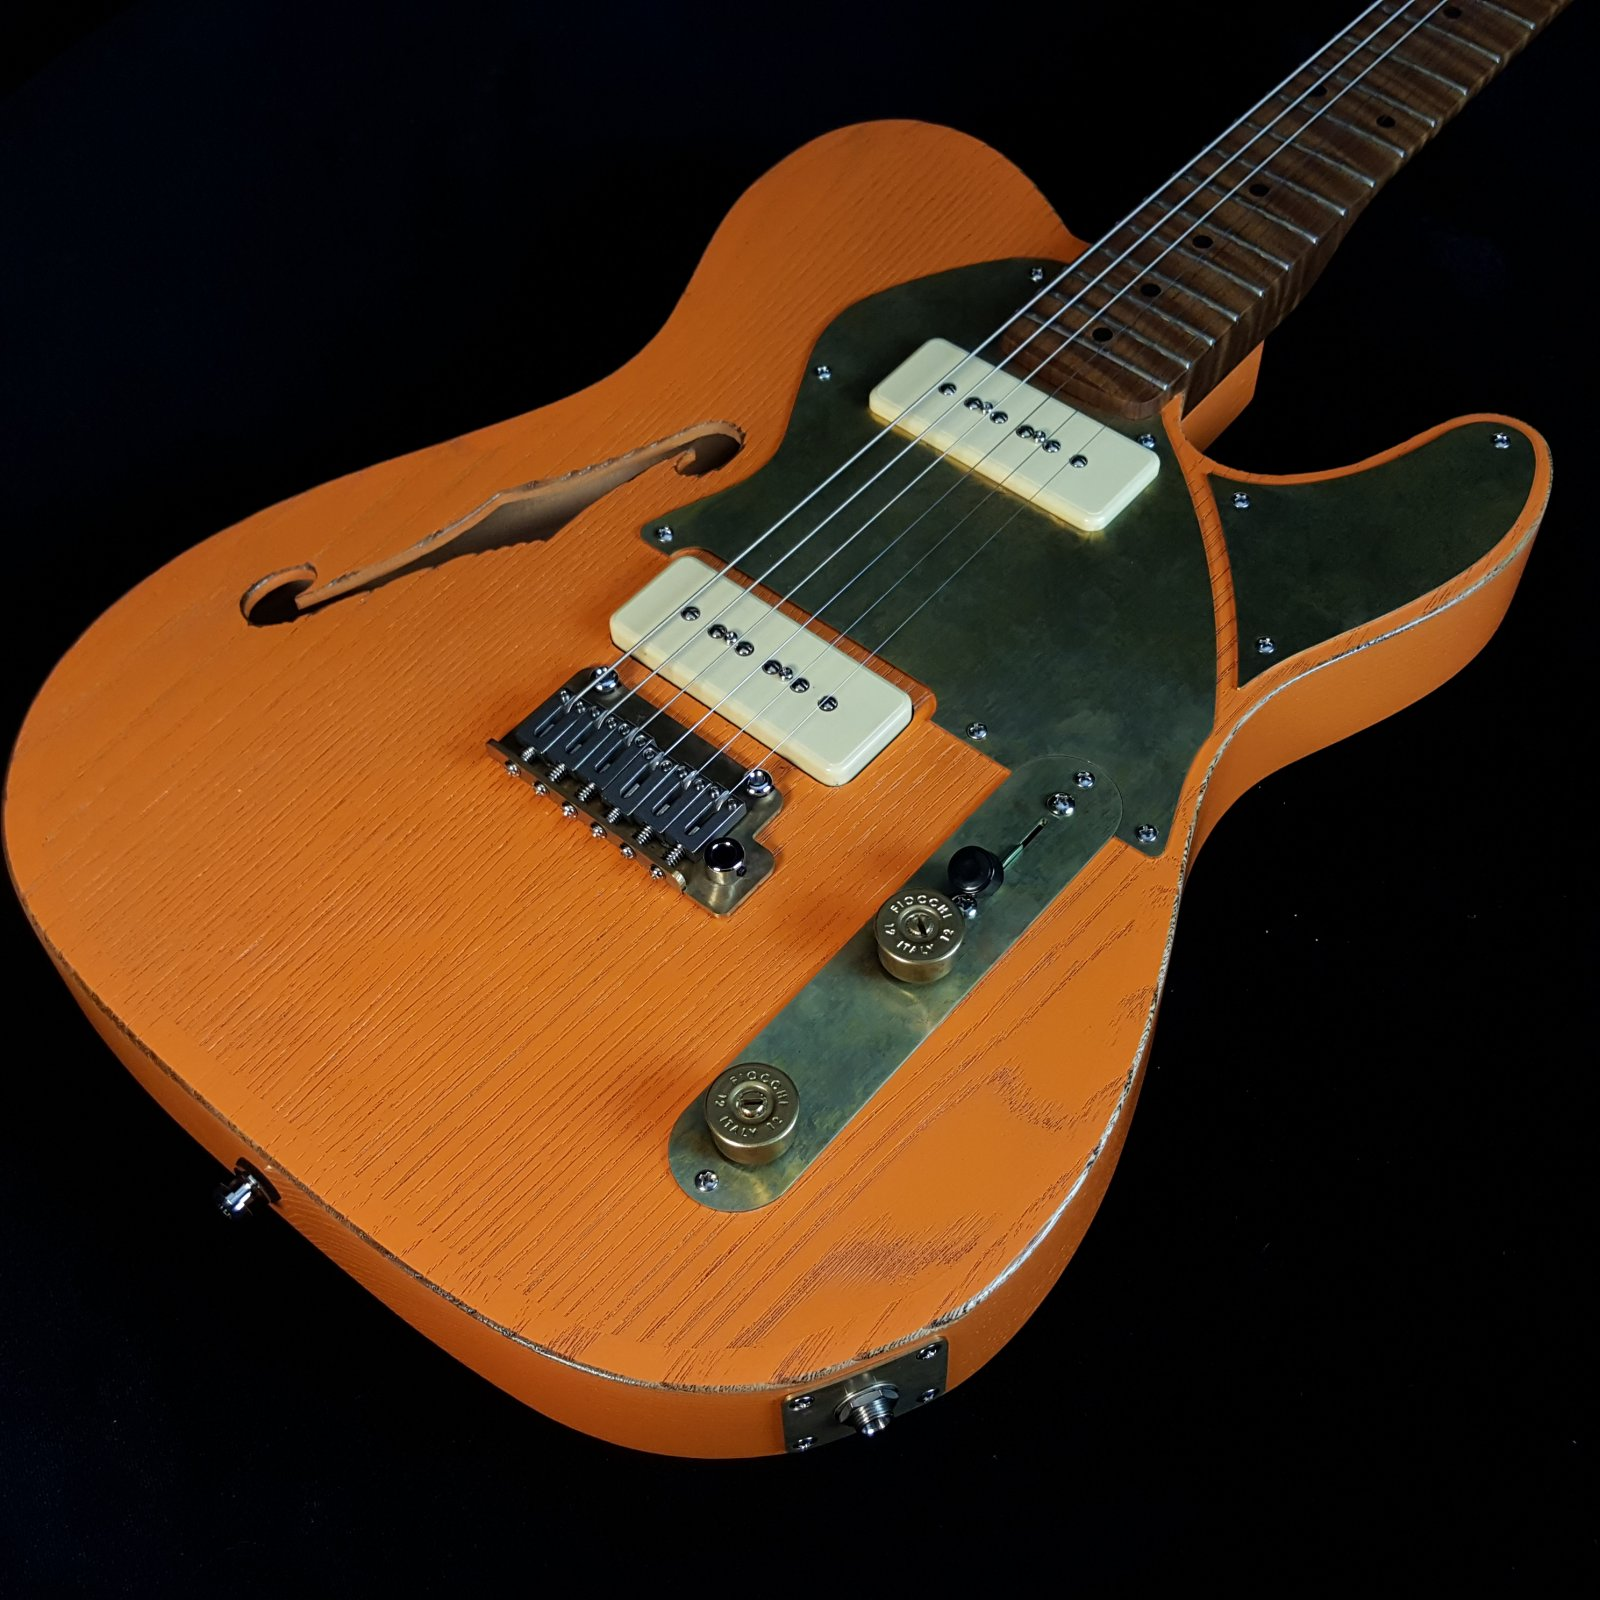 Paoletti Nancy Thinline 2P90 Lounge Series Sunset Orange, Flame Neck